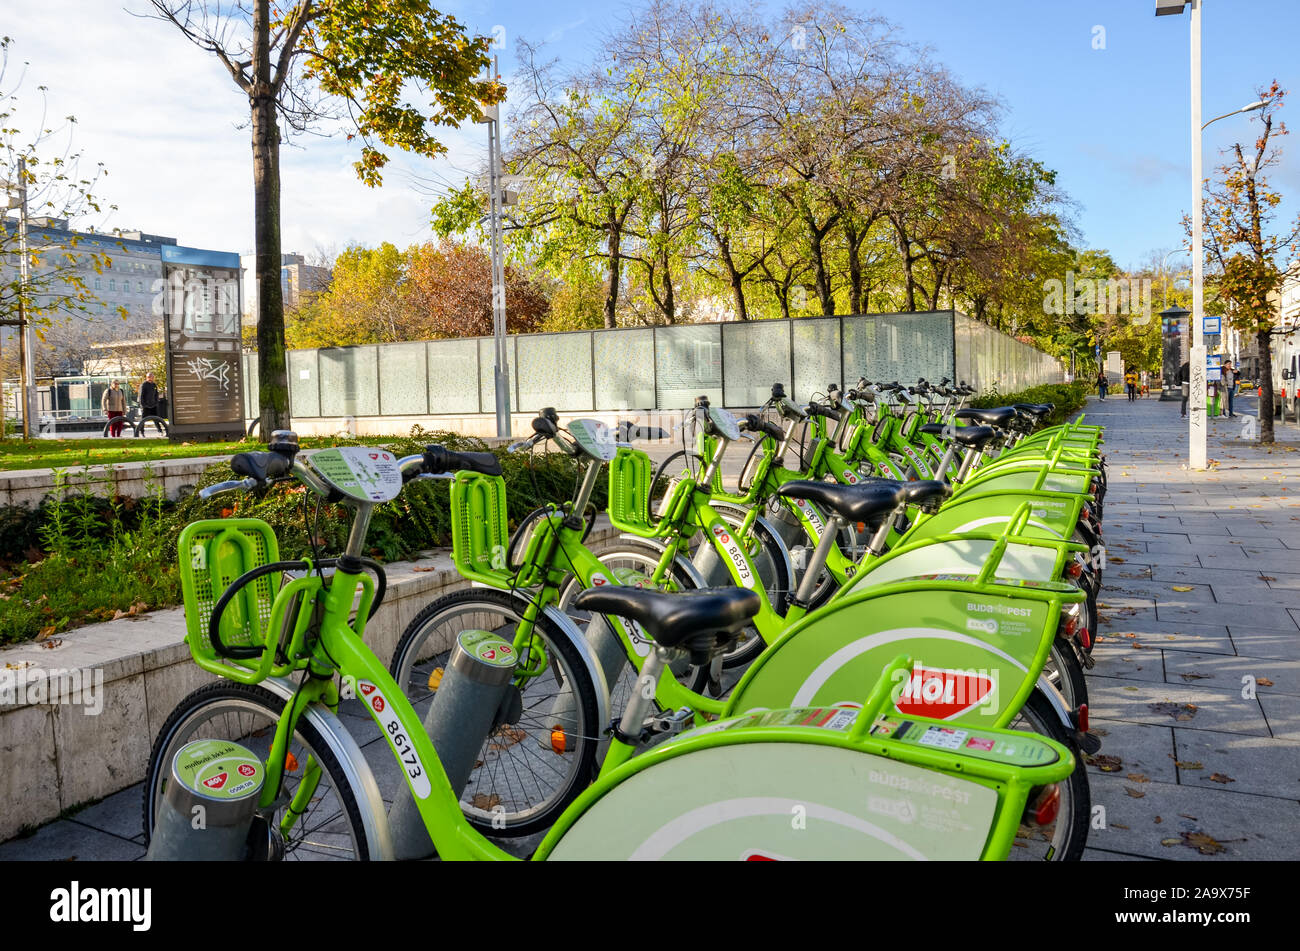 Budapest, Hungary - Nov 6, 2019: Public green bikes for rental in the center of the Hungarian capital city. Bike-sharing. Eco-friendly means of transport. Ecological measures in the cities. Bicycles. Stock Photo